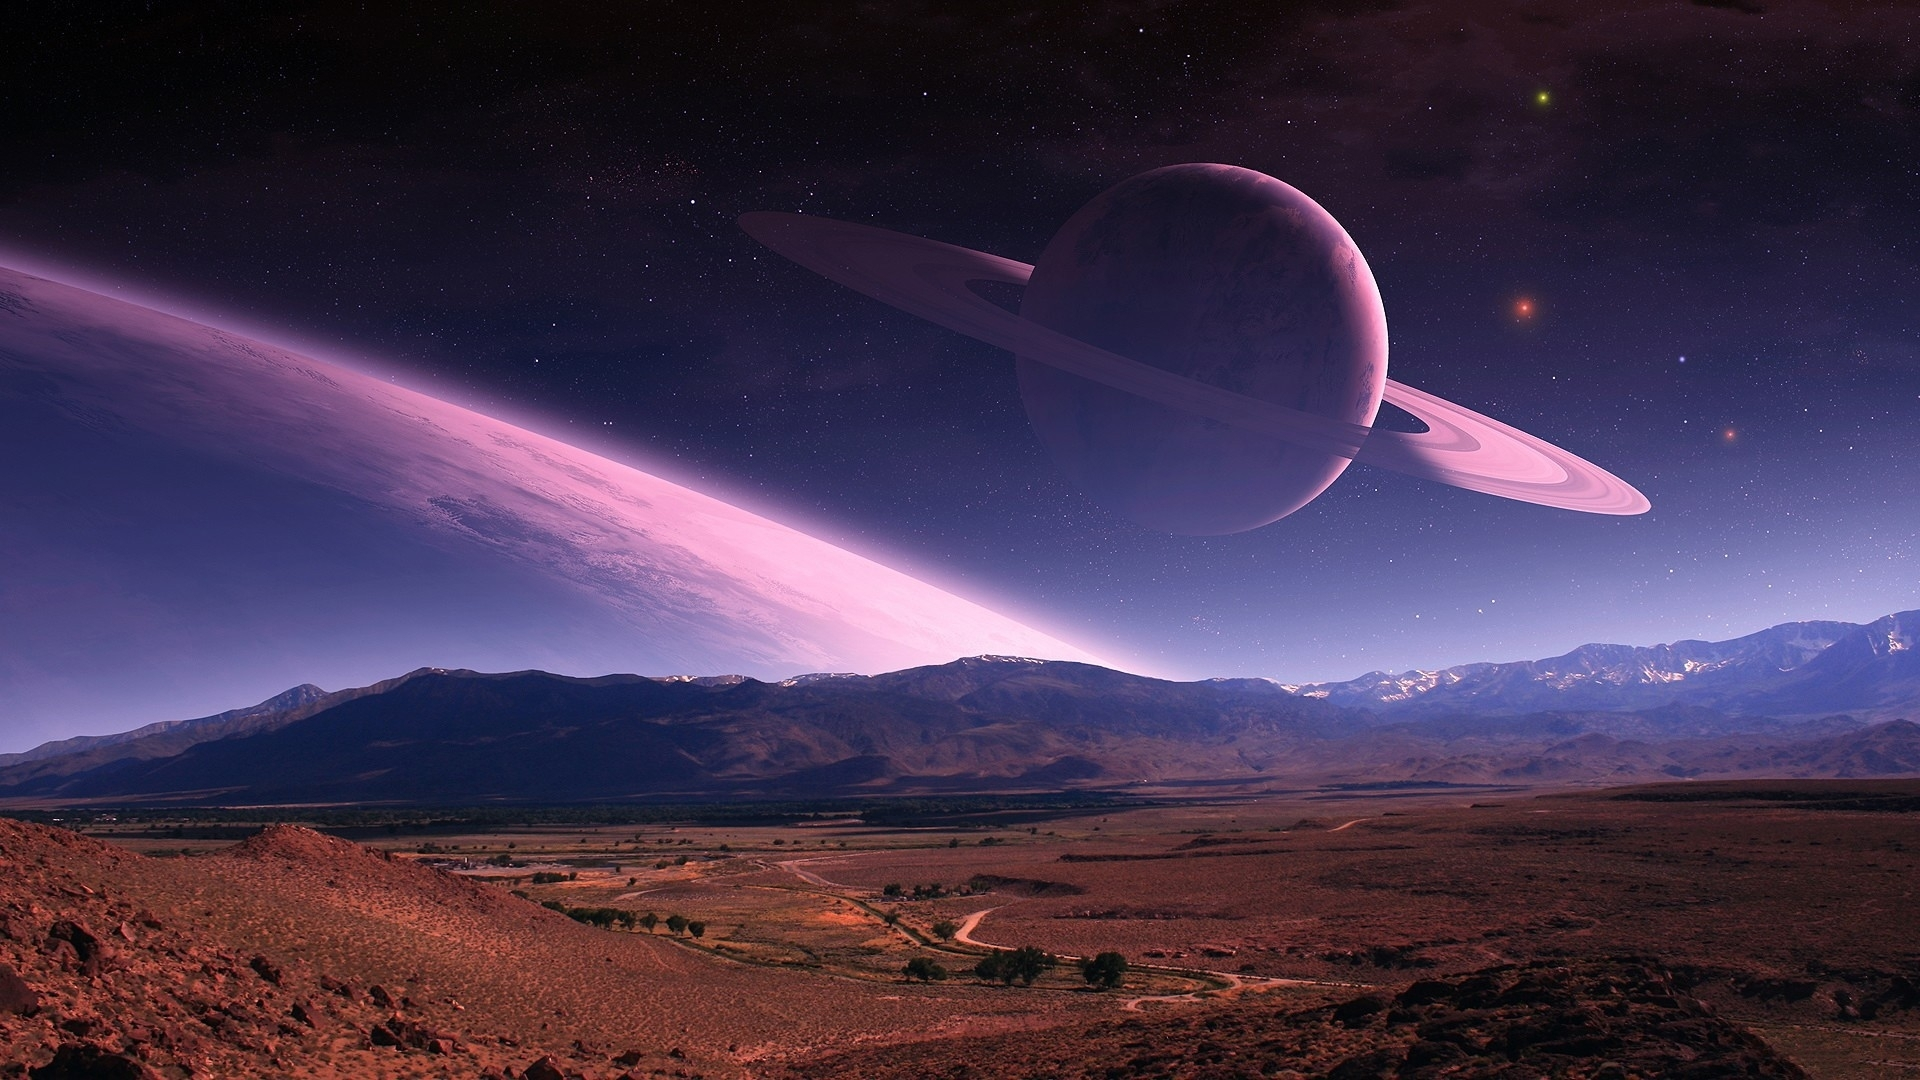 Planet wallpapers best wallpapers for Space landscape